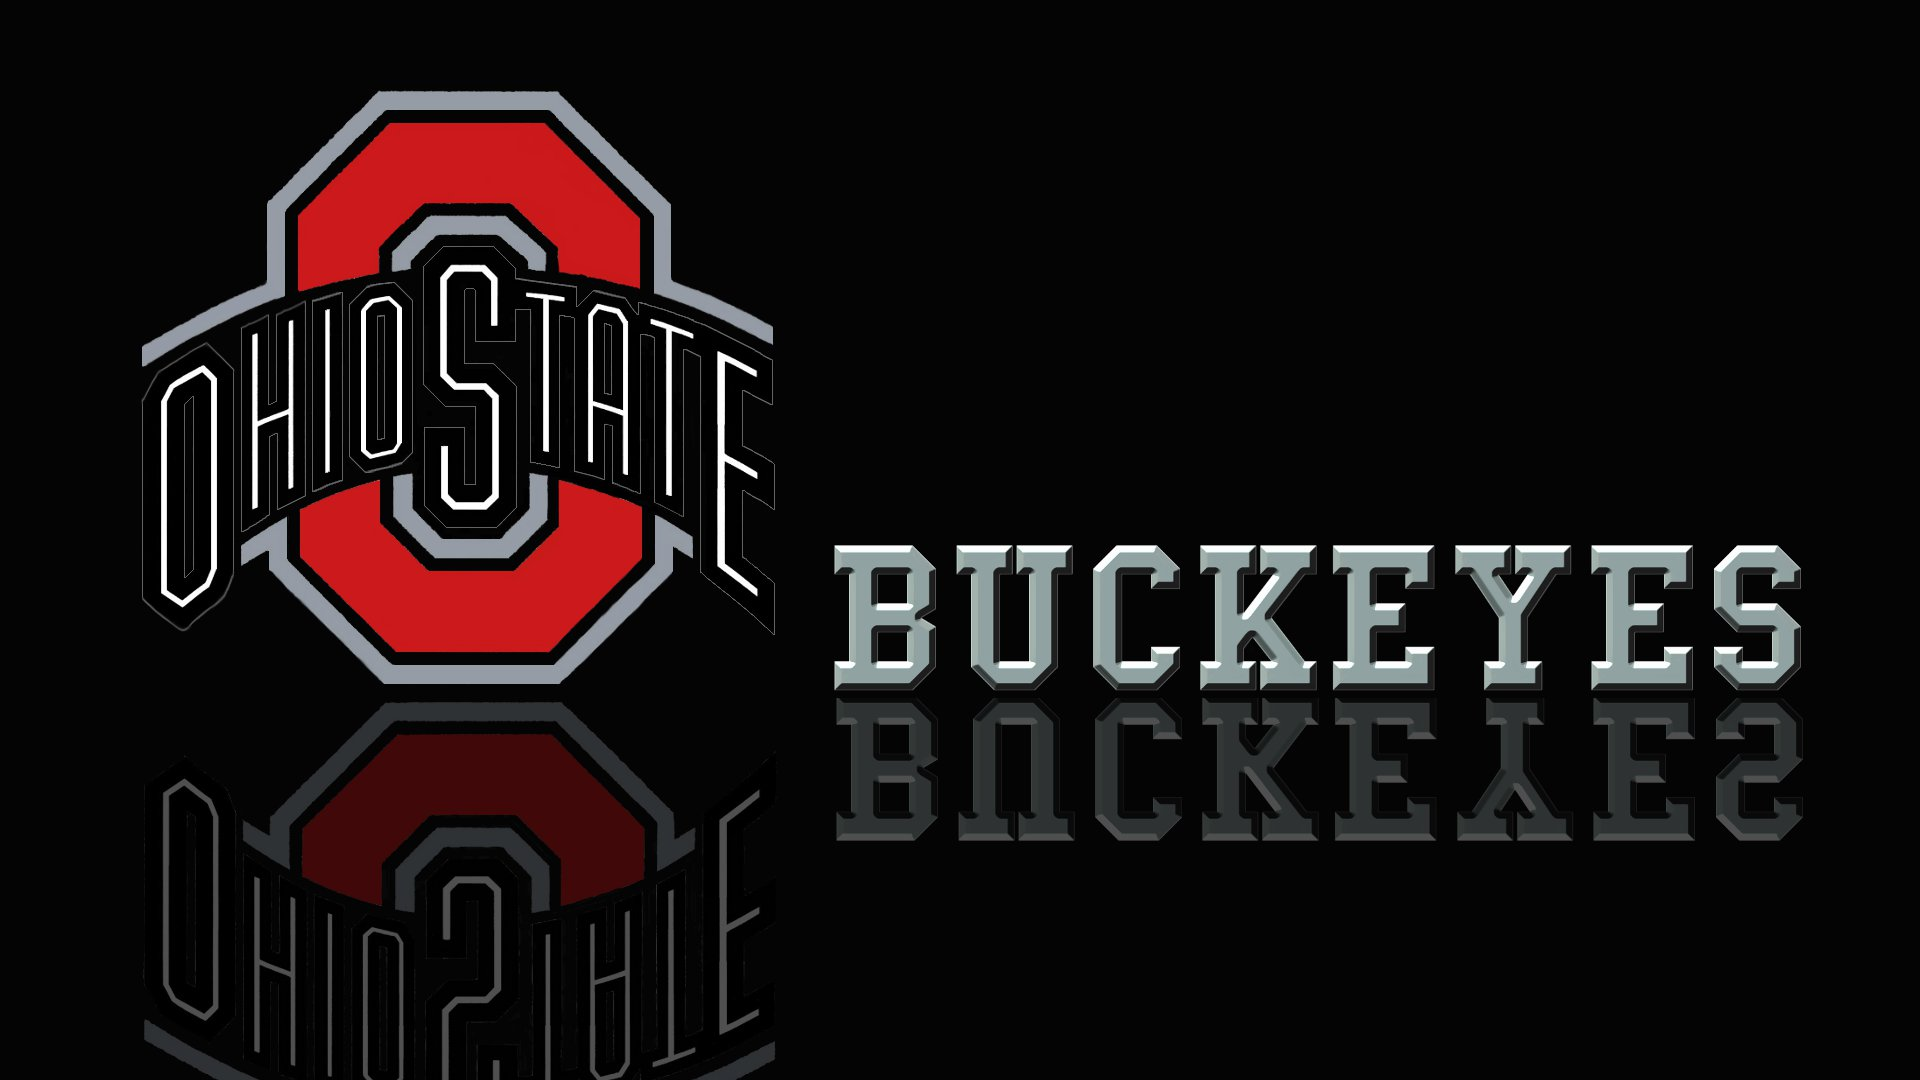 ohio state buckeyes football wallpaper 3 1920x1080